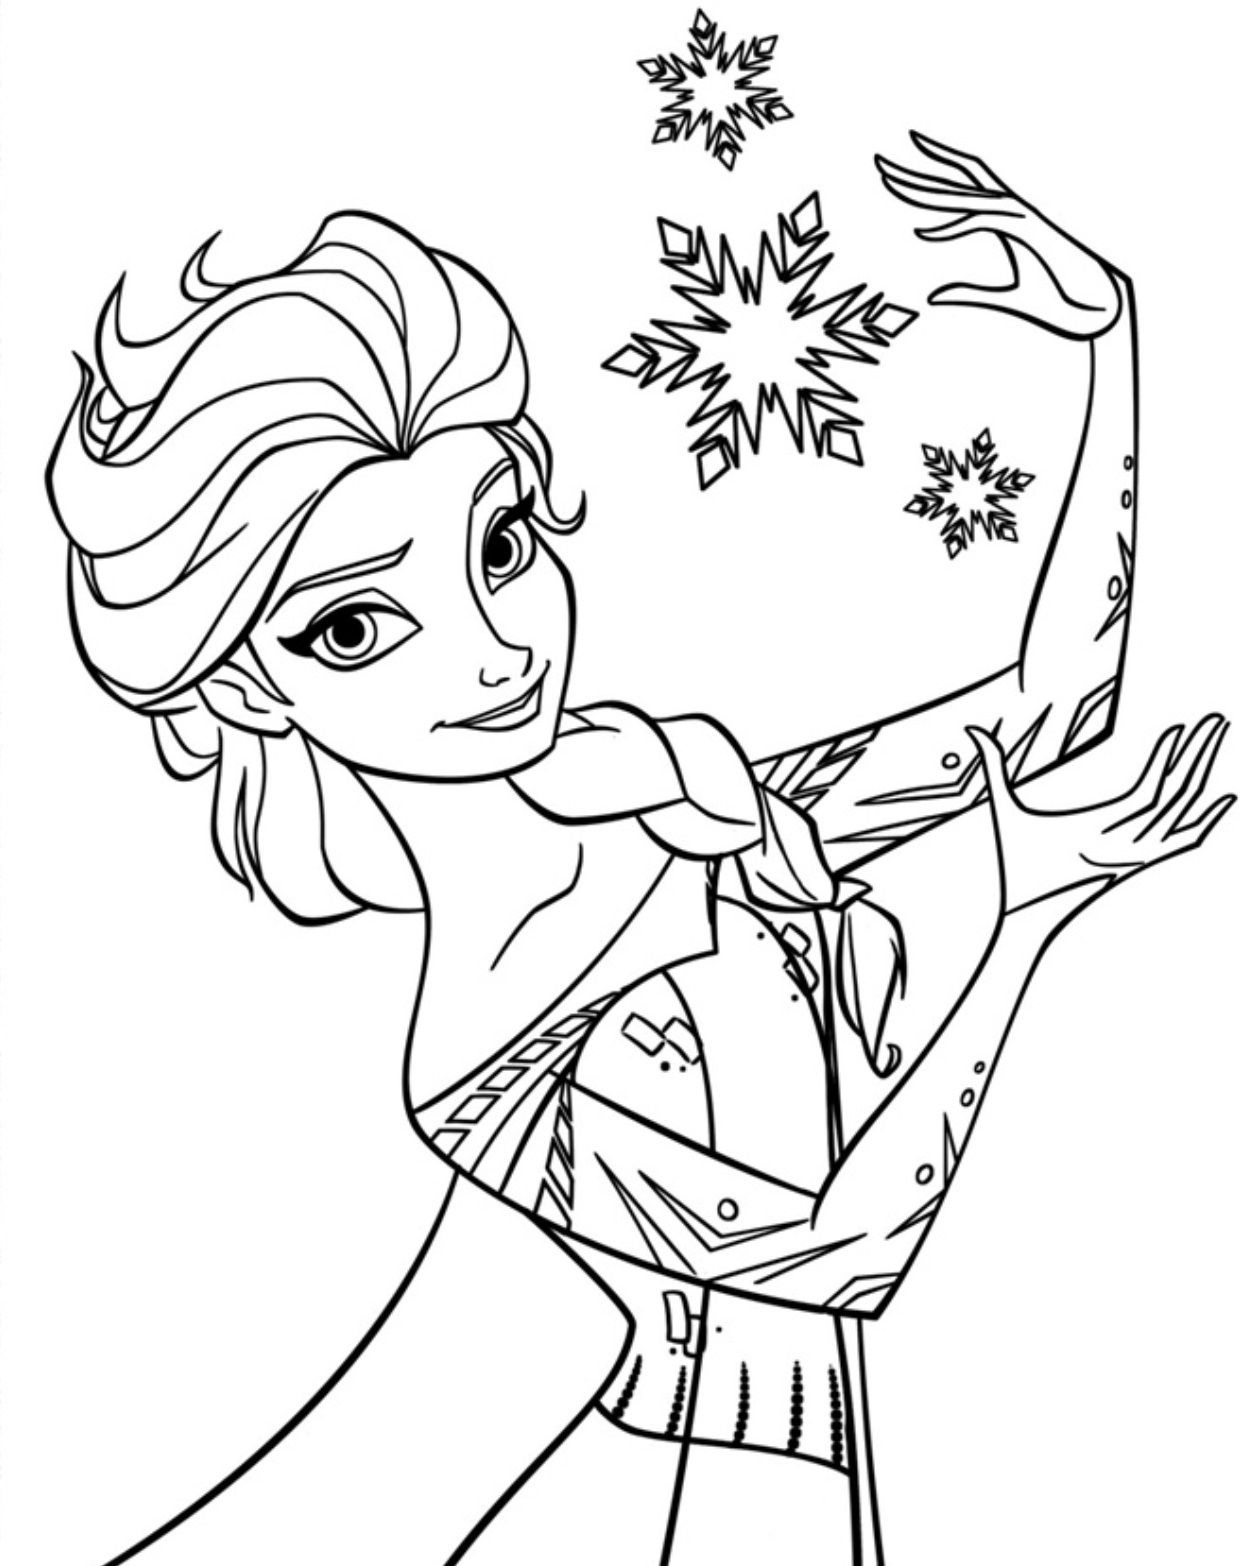 Free Printable Elsa Coloring Pages For Kids | Elsa | Frozen Coloring - Free Printable Frozen Coloring Pages